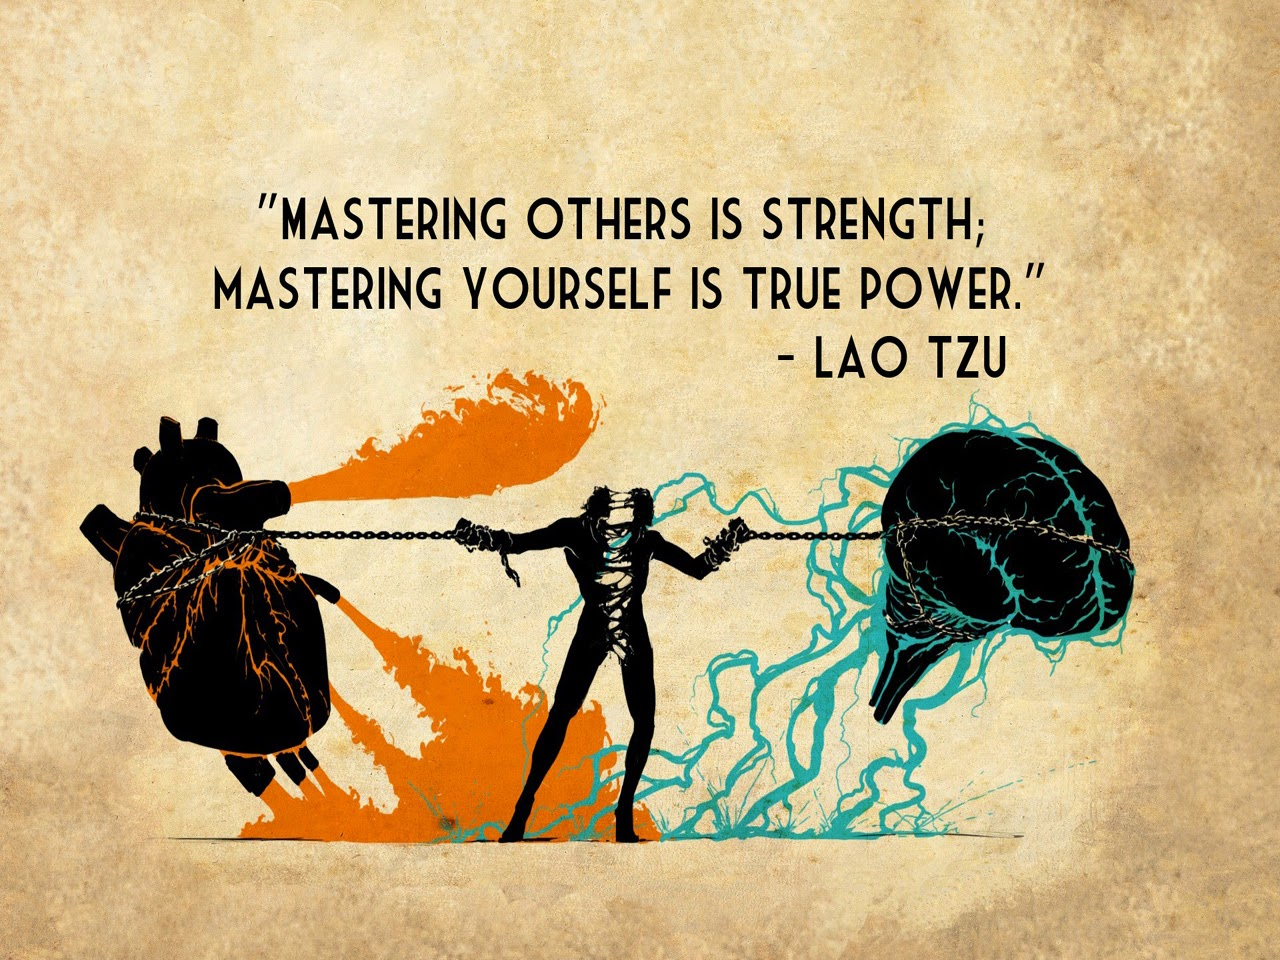 Strength Quotes: Inspirational Quotes About Strength And Power With Images